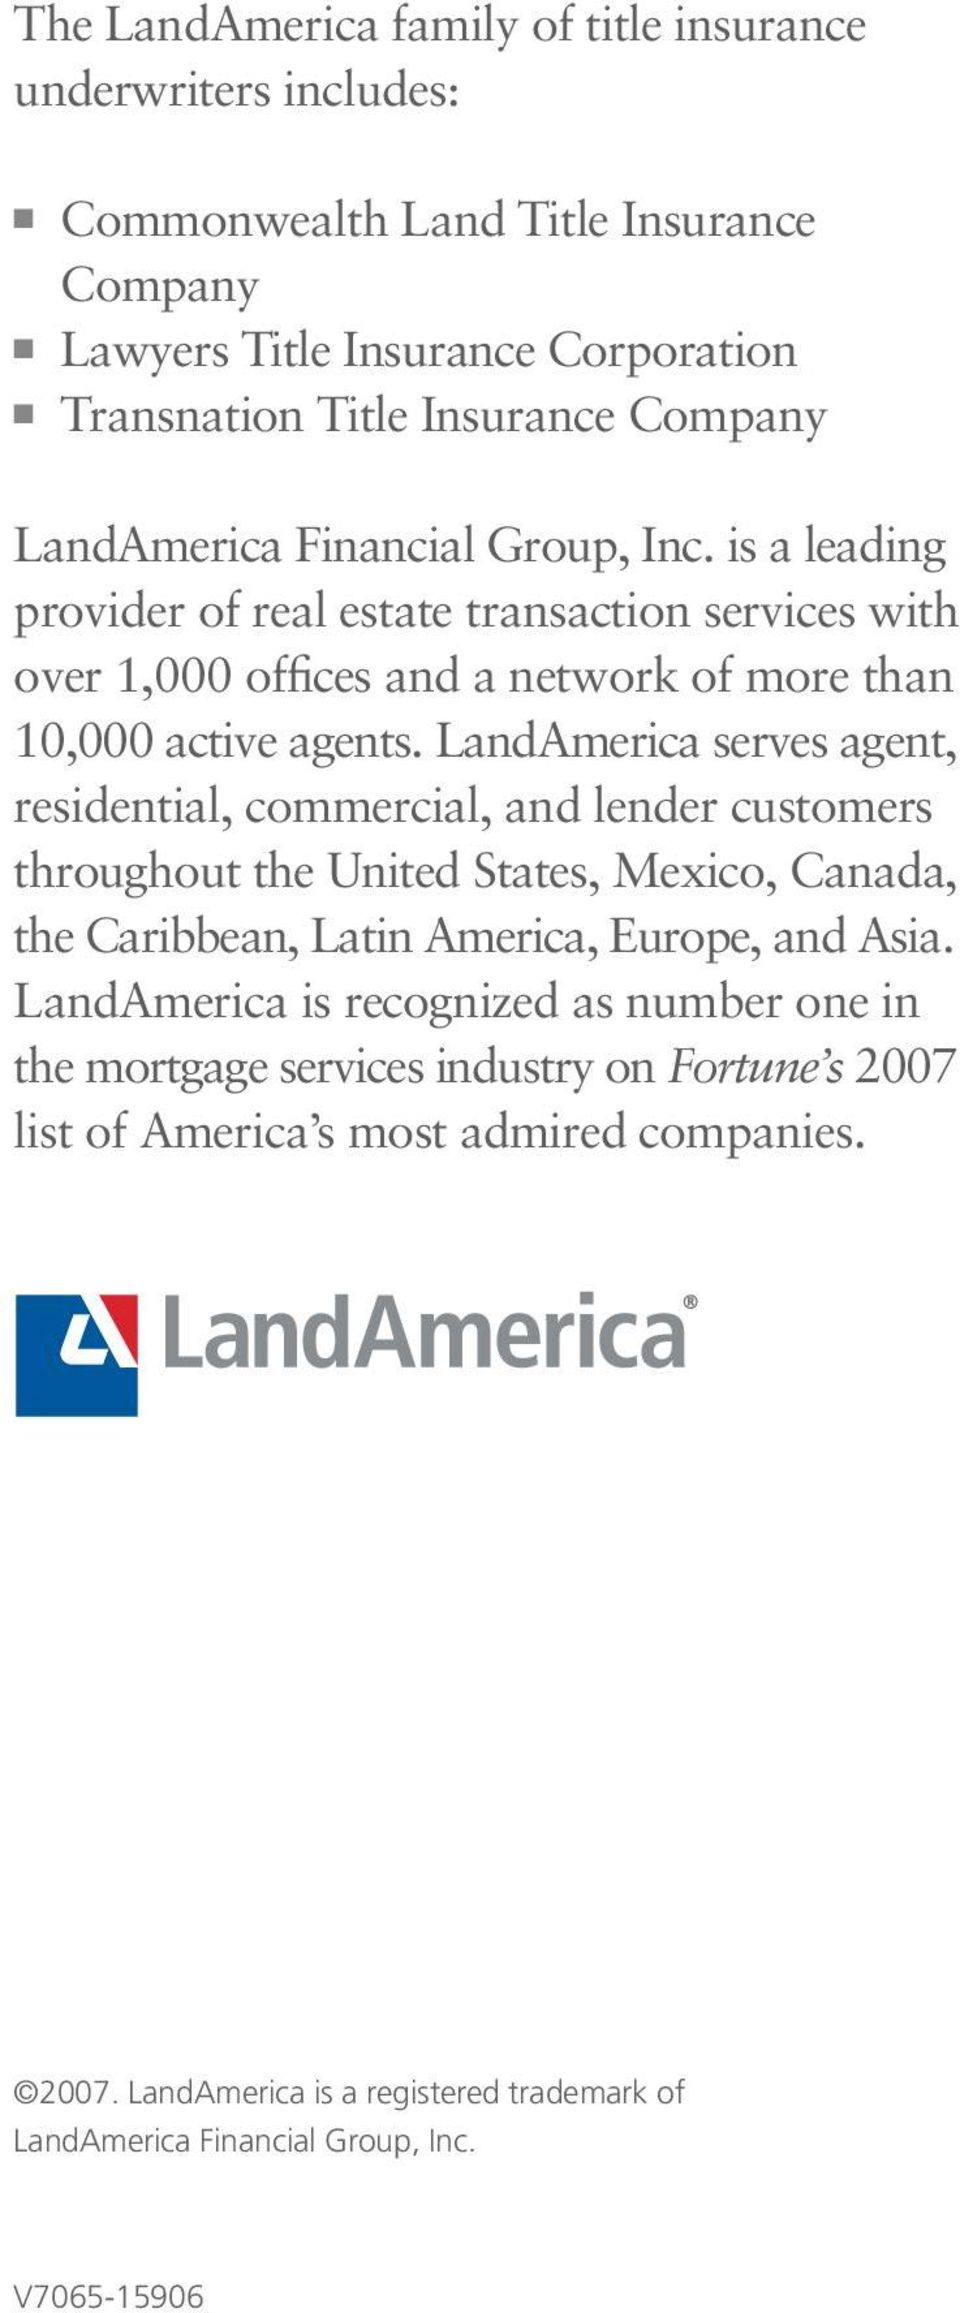 LandAmerica serves agent, residential, commercial, and lender customers throughout the United States, Mexico, Canada, the Caribbean, Latin America, Europe, and Asia.